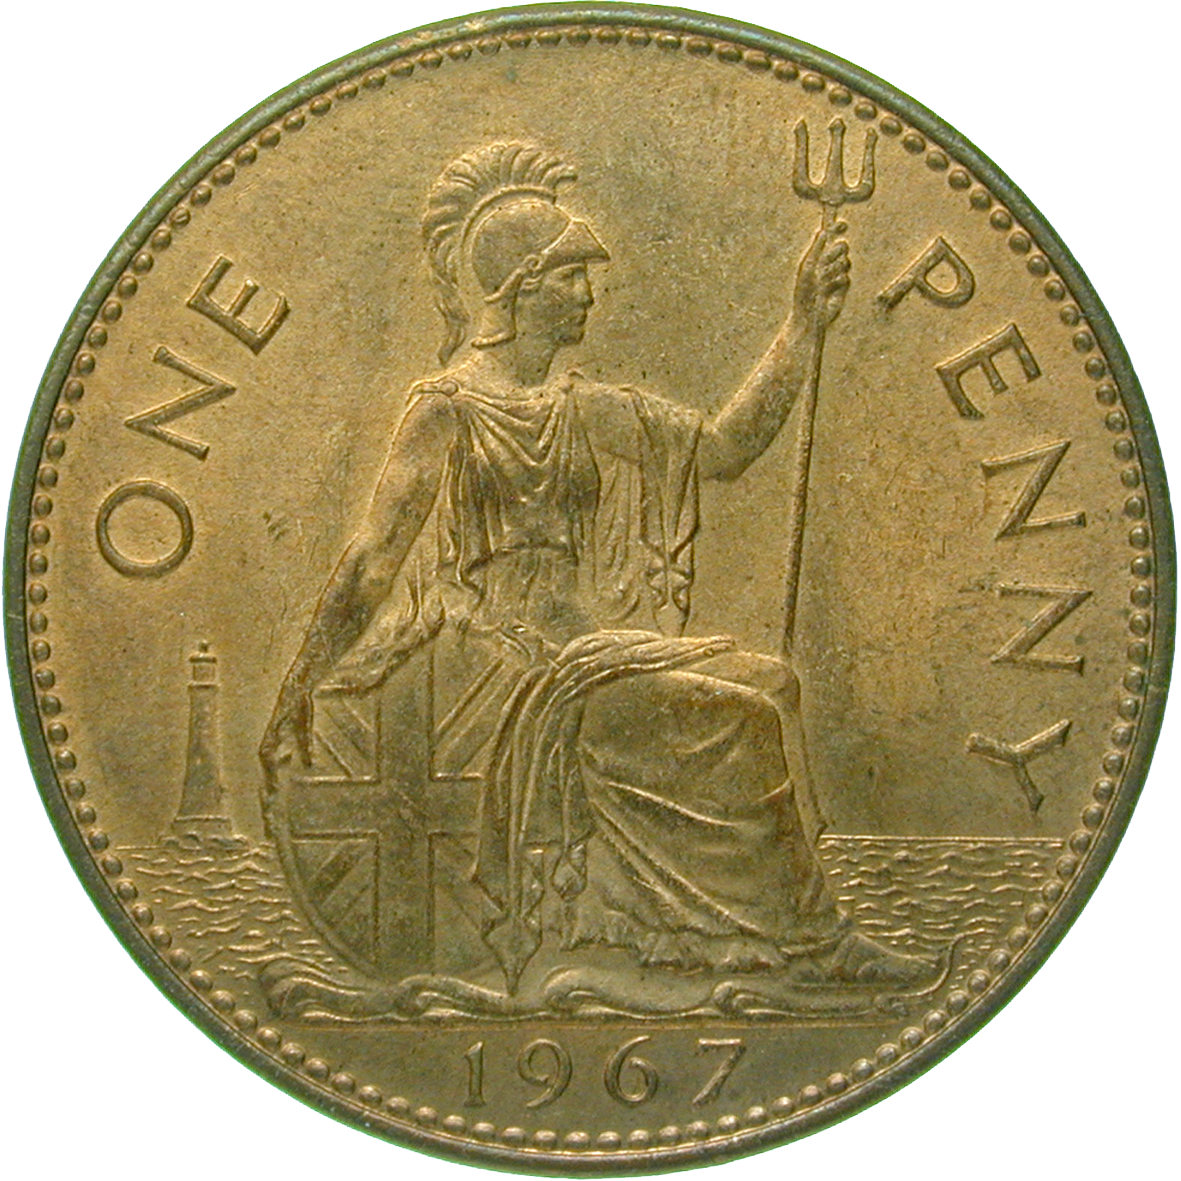 United Kingdom of Great Britain, Elizabeth II, 1 Penny 1967 (reverse)